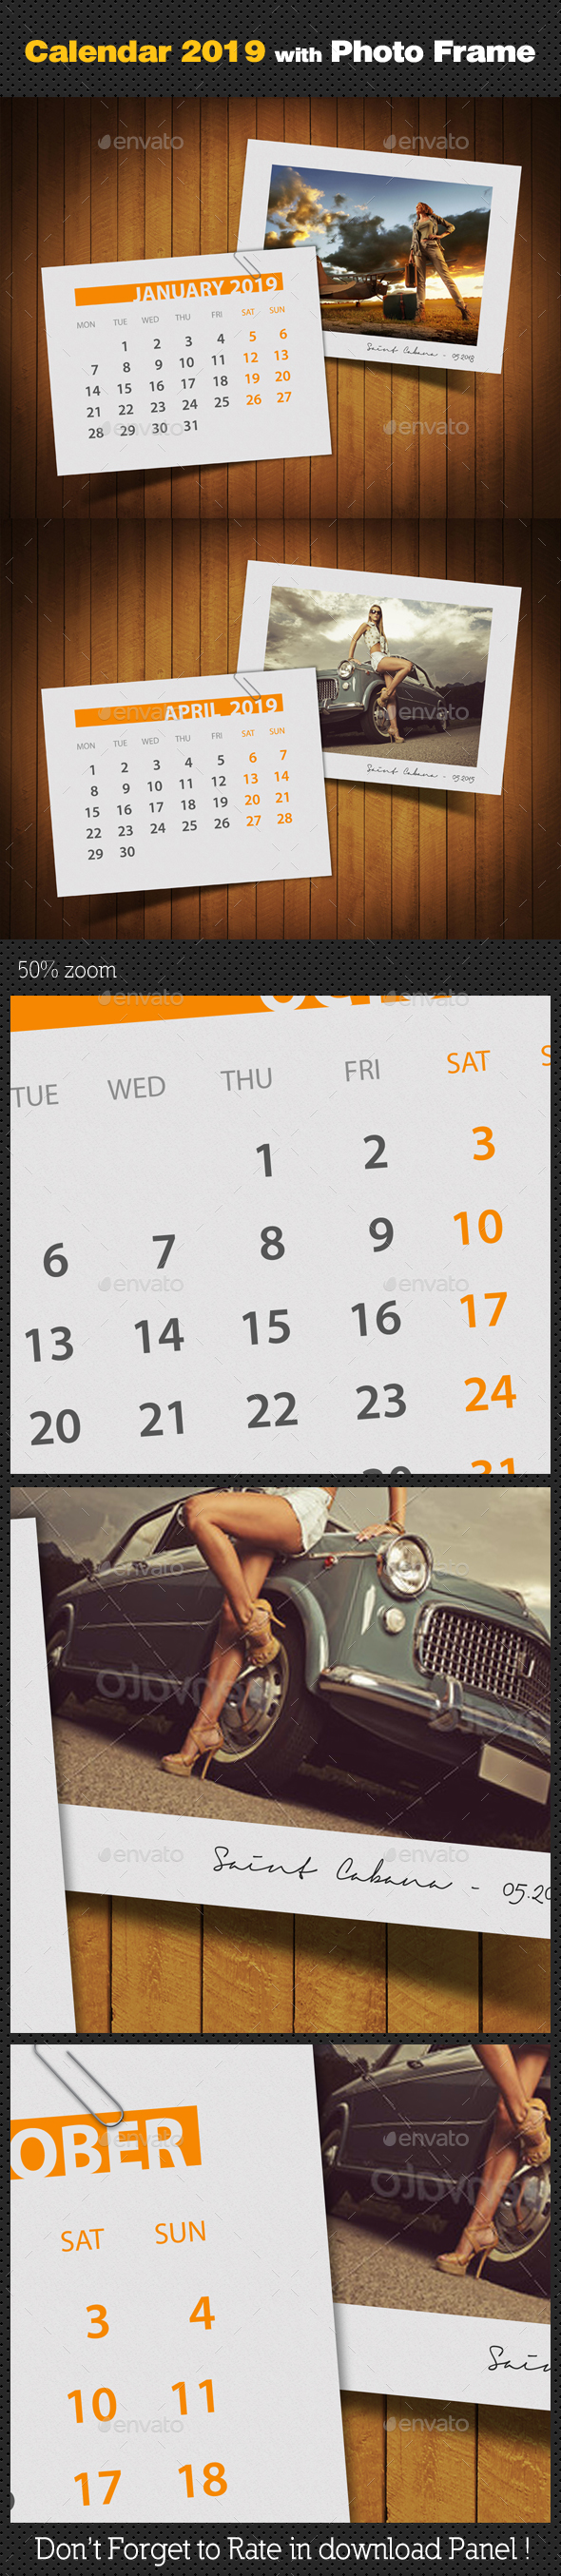 Customizable Calendar 2019 Photo Frame V03 - Miscellaneous Photo Templates